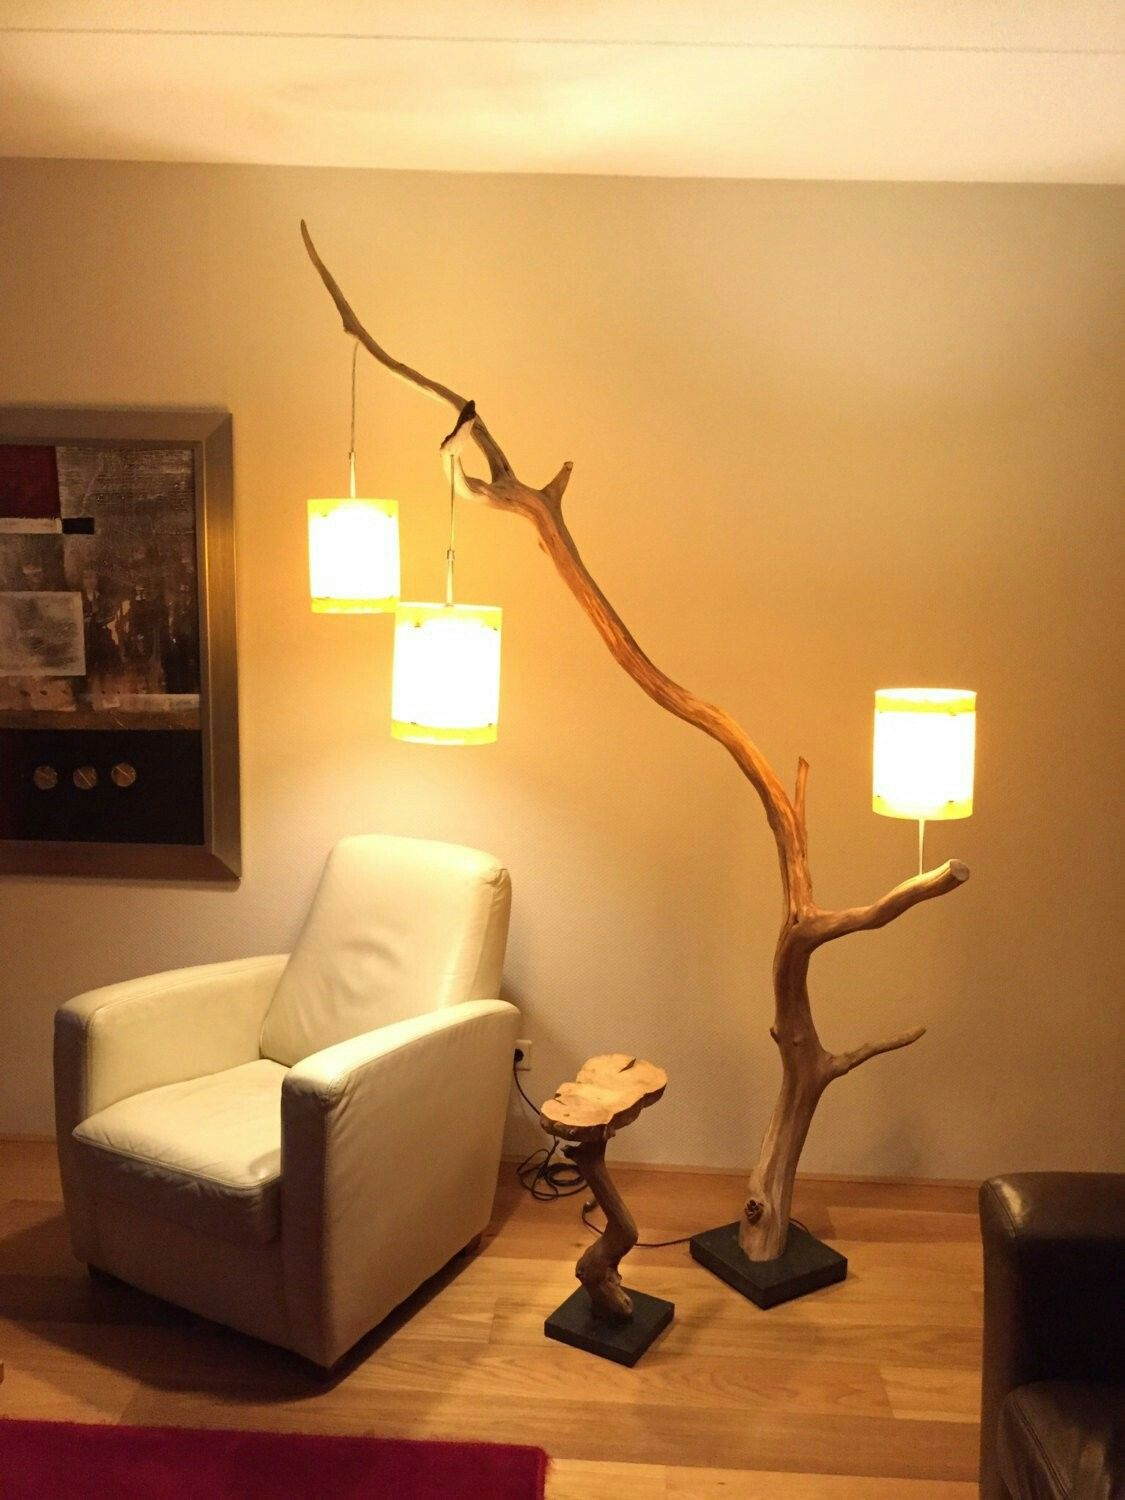 Pin By Andria Fultz On A3 Stick Muses Unique Floor Lamps Diy Floor Lamp Wooden Lamp